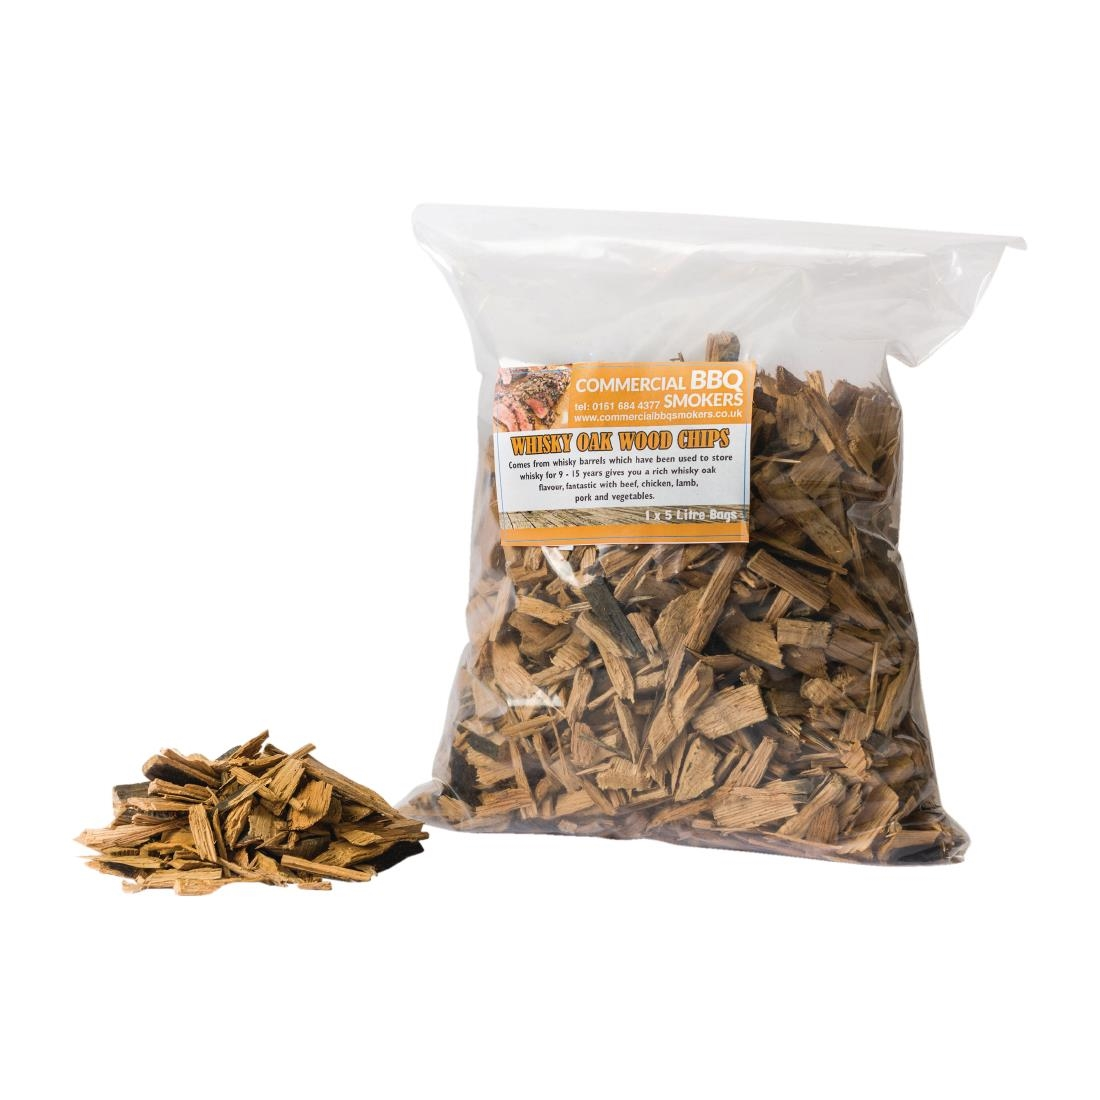 Blackwood Smoking Chips Whisky 5 Litre Bags (Pack of 4) Pack of 4